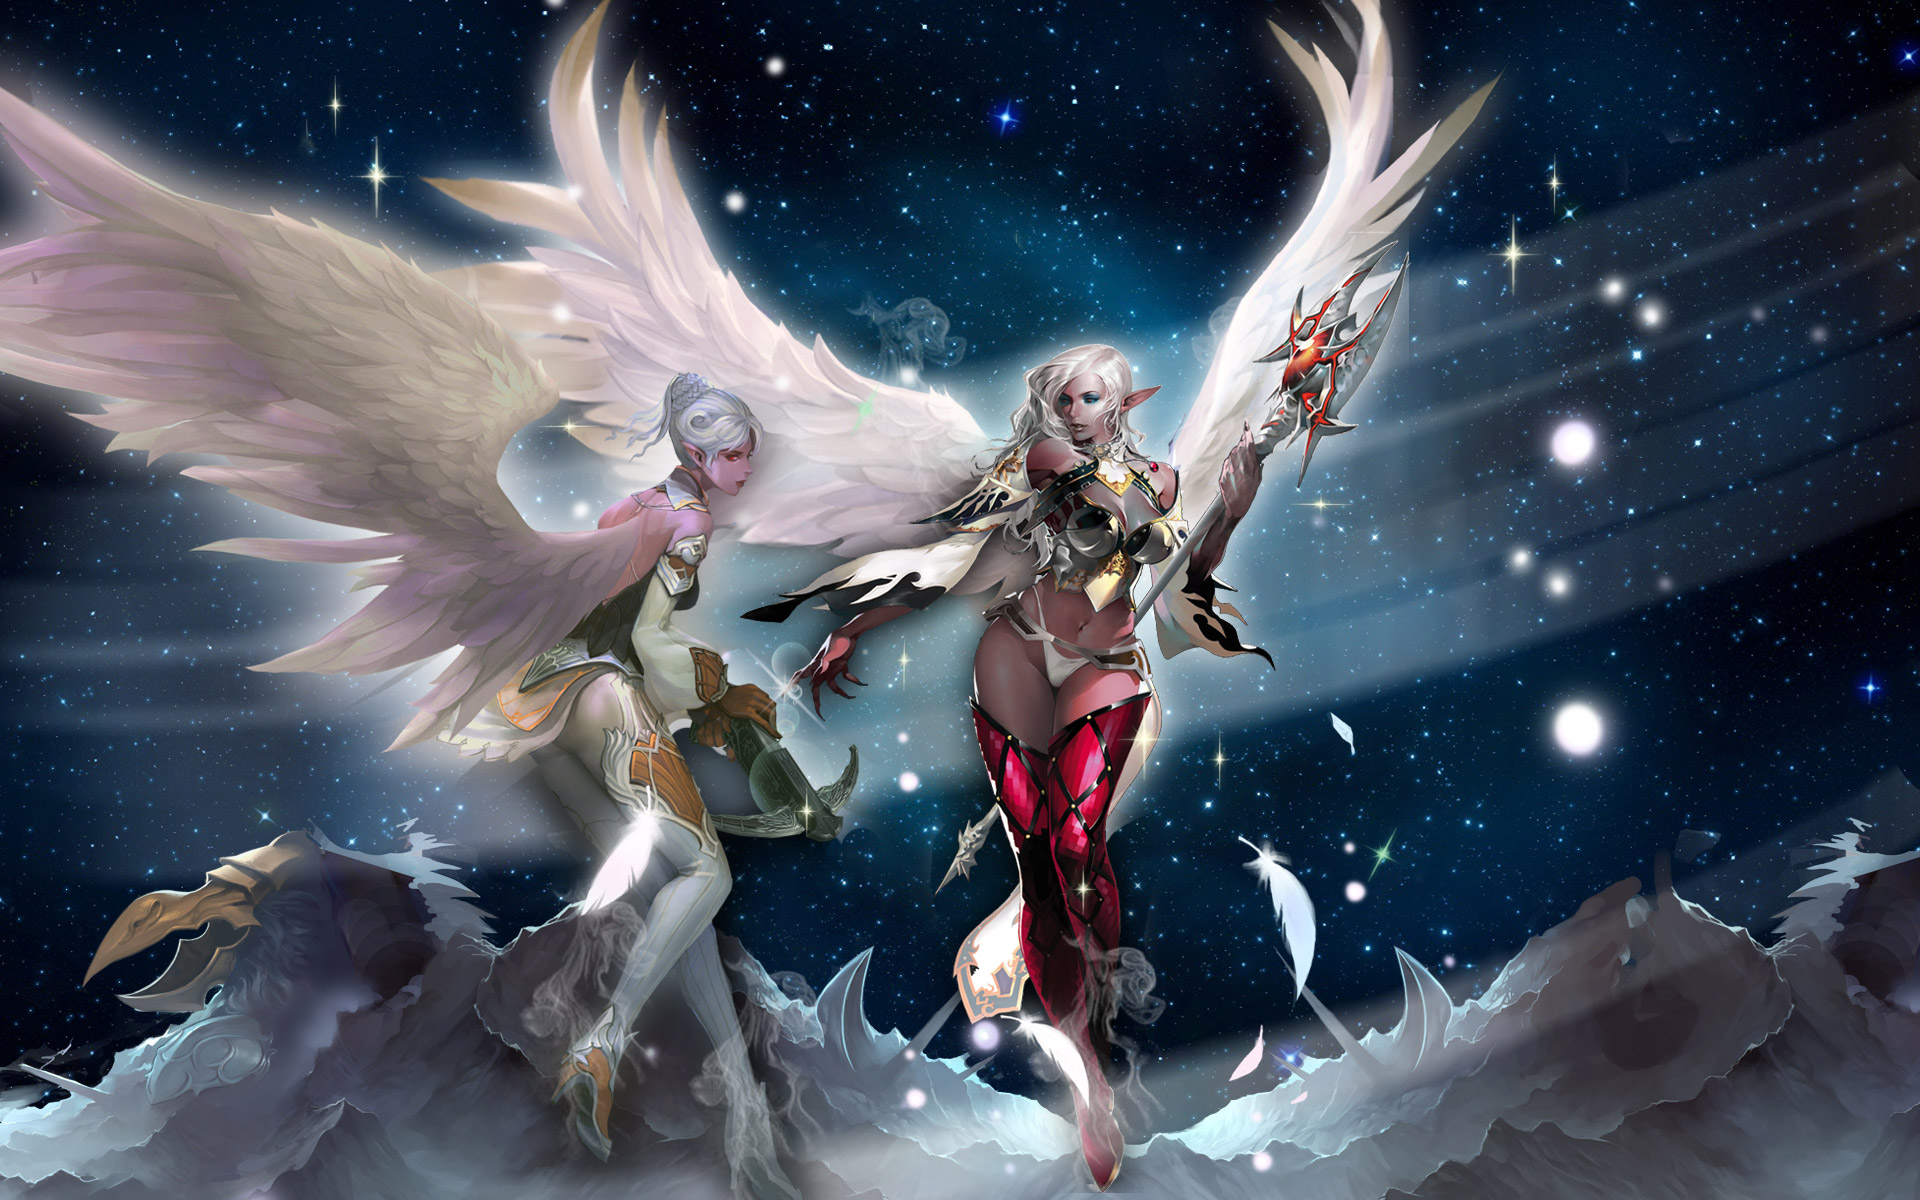 Lineage 2 erotic arts sexy picture